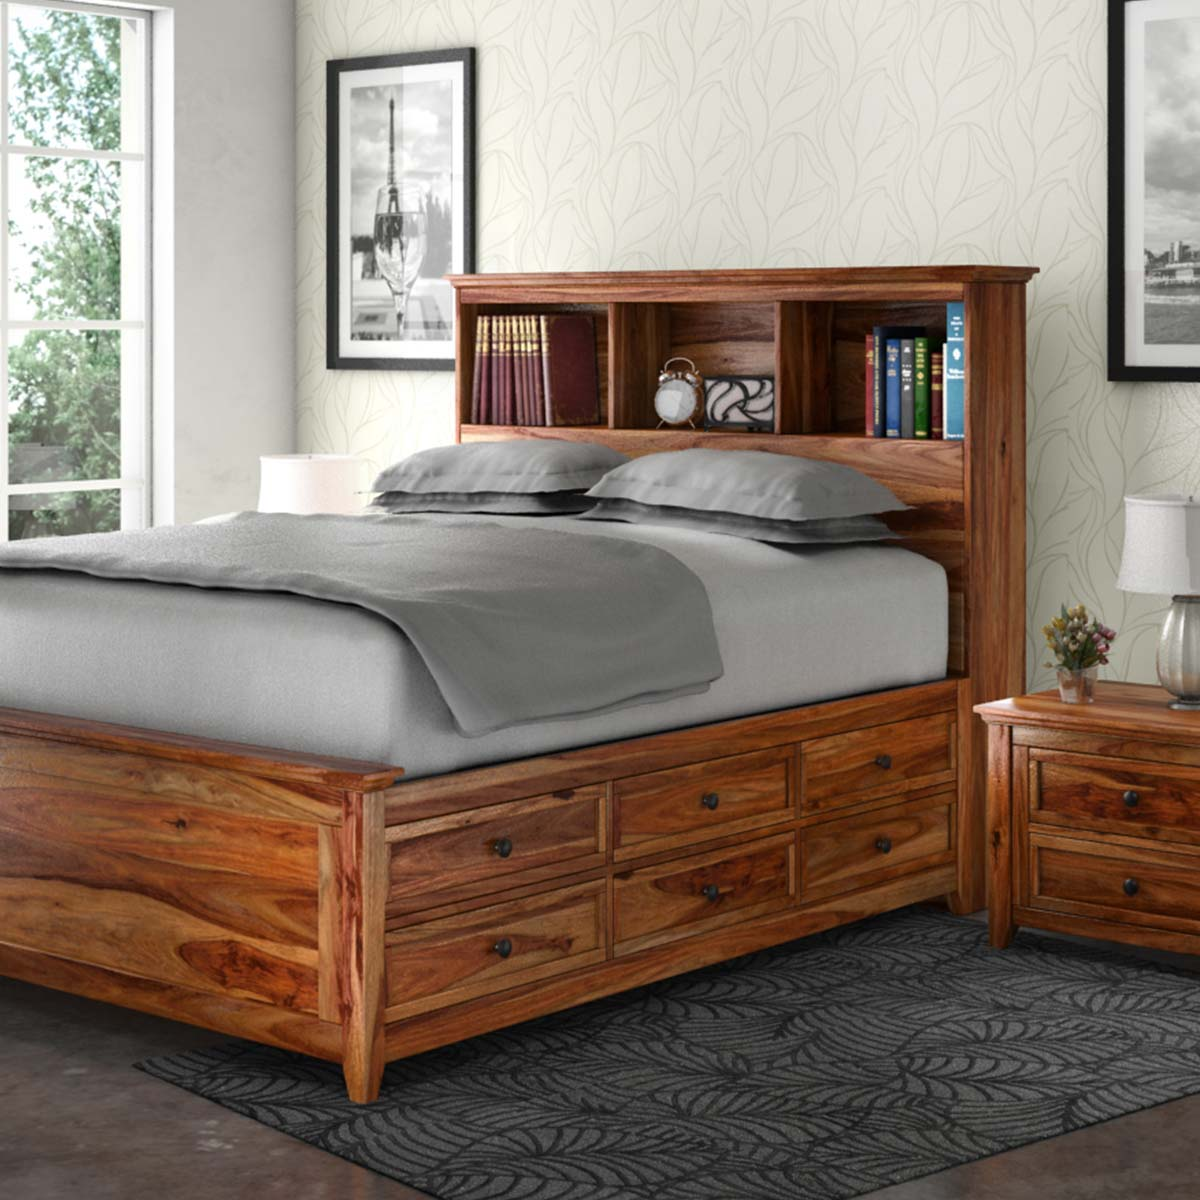 Picture of: Solid Wood Storage Bed Ideas